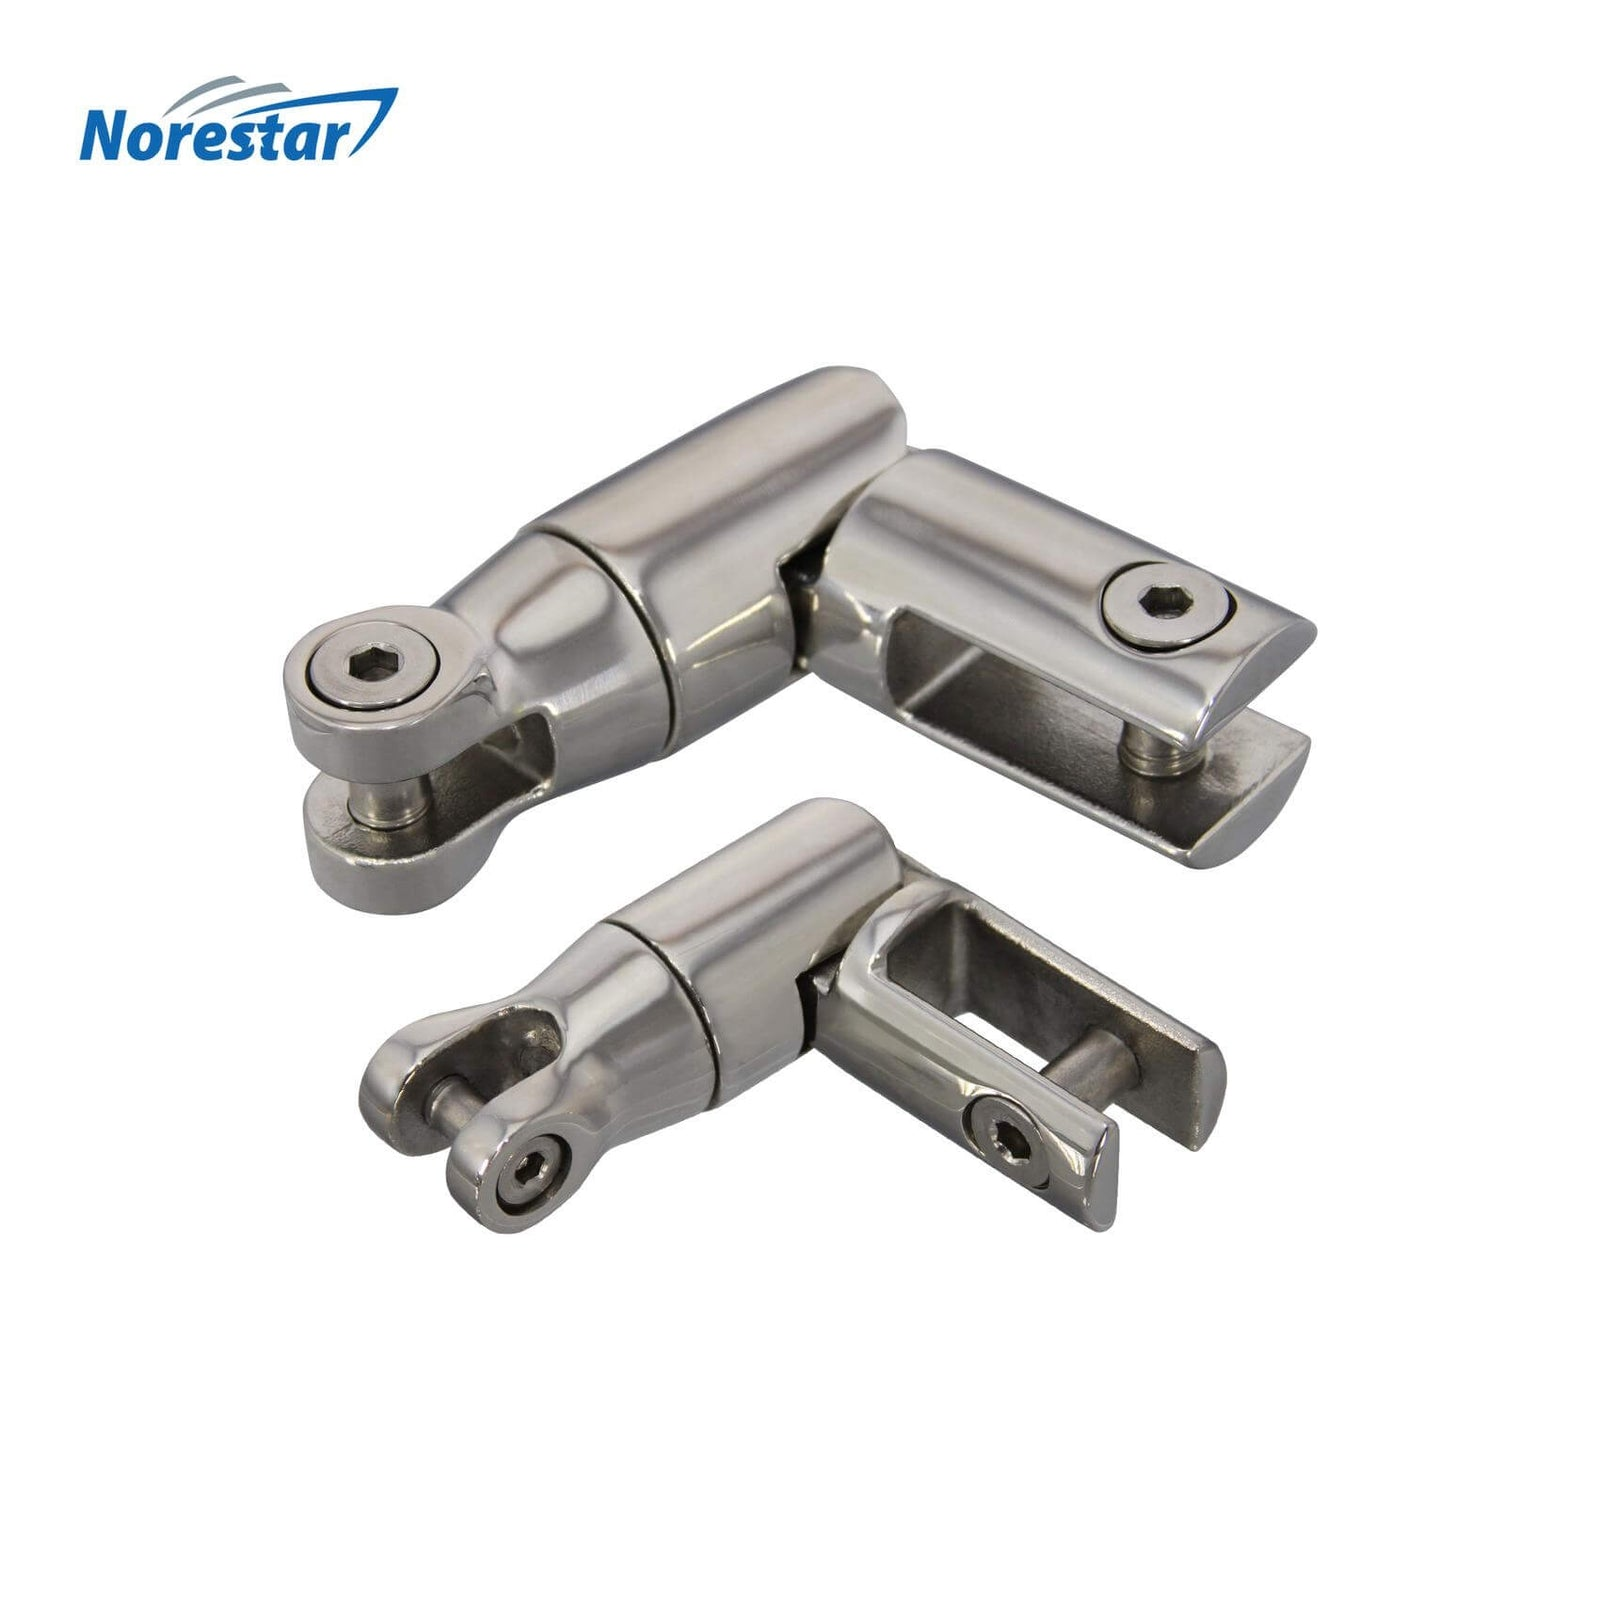 Norestar Stainless Steel Multidirectional Anchor Swivel Size Comparison